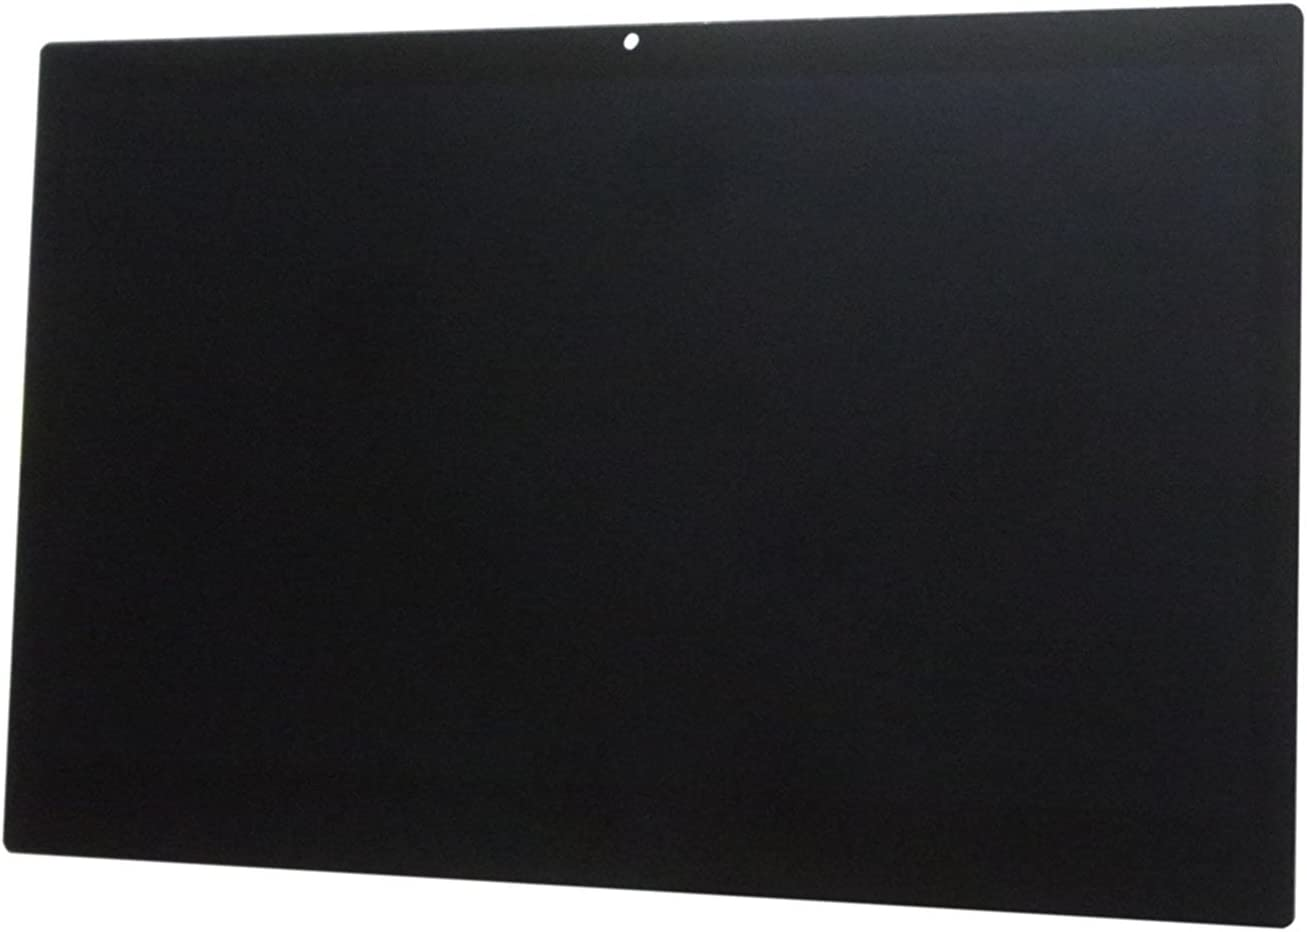 """Kreplacement Touch Screen Replacement Digitizer with HD LCD Display for 14"""" Acer Aspire R3-471T-59UL R3-471T-54t1 1366x768"""